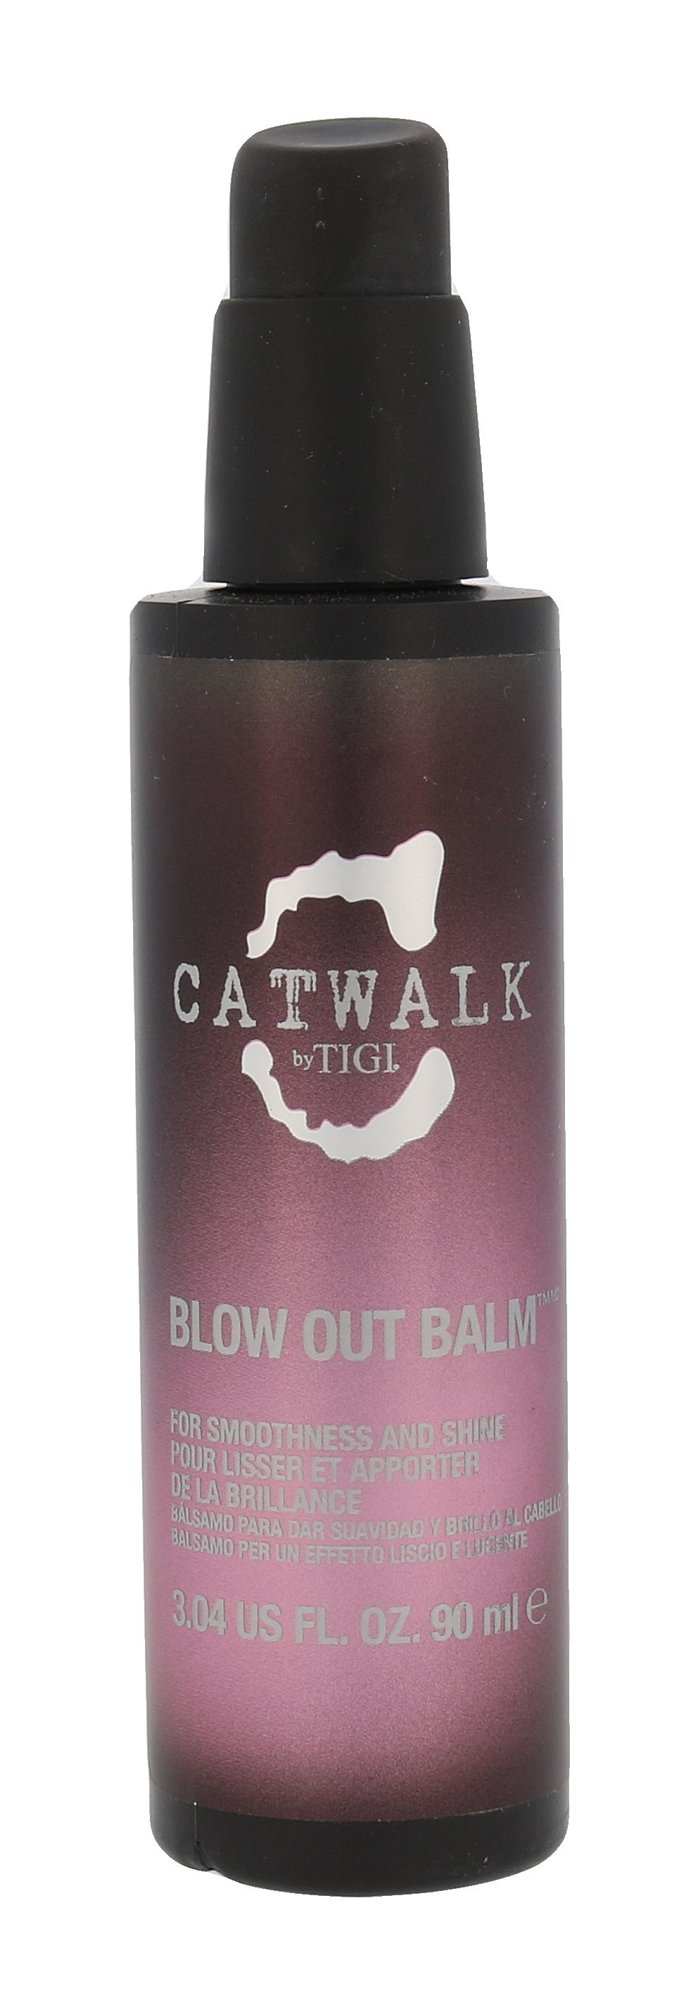 Tigi Catwalk Blow Out Balm Cosmetic 90ml